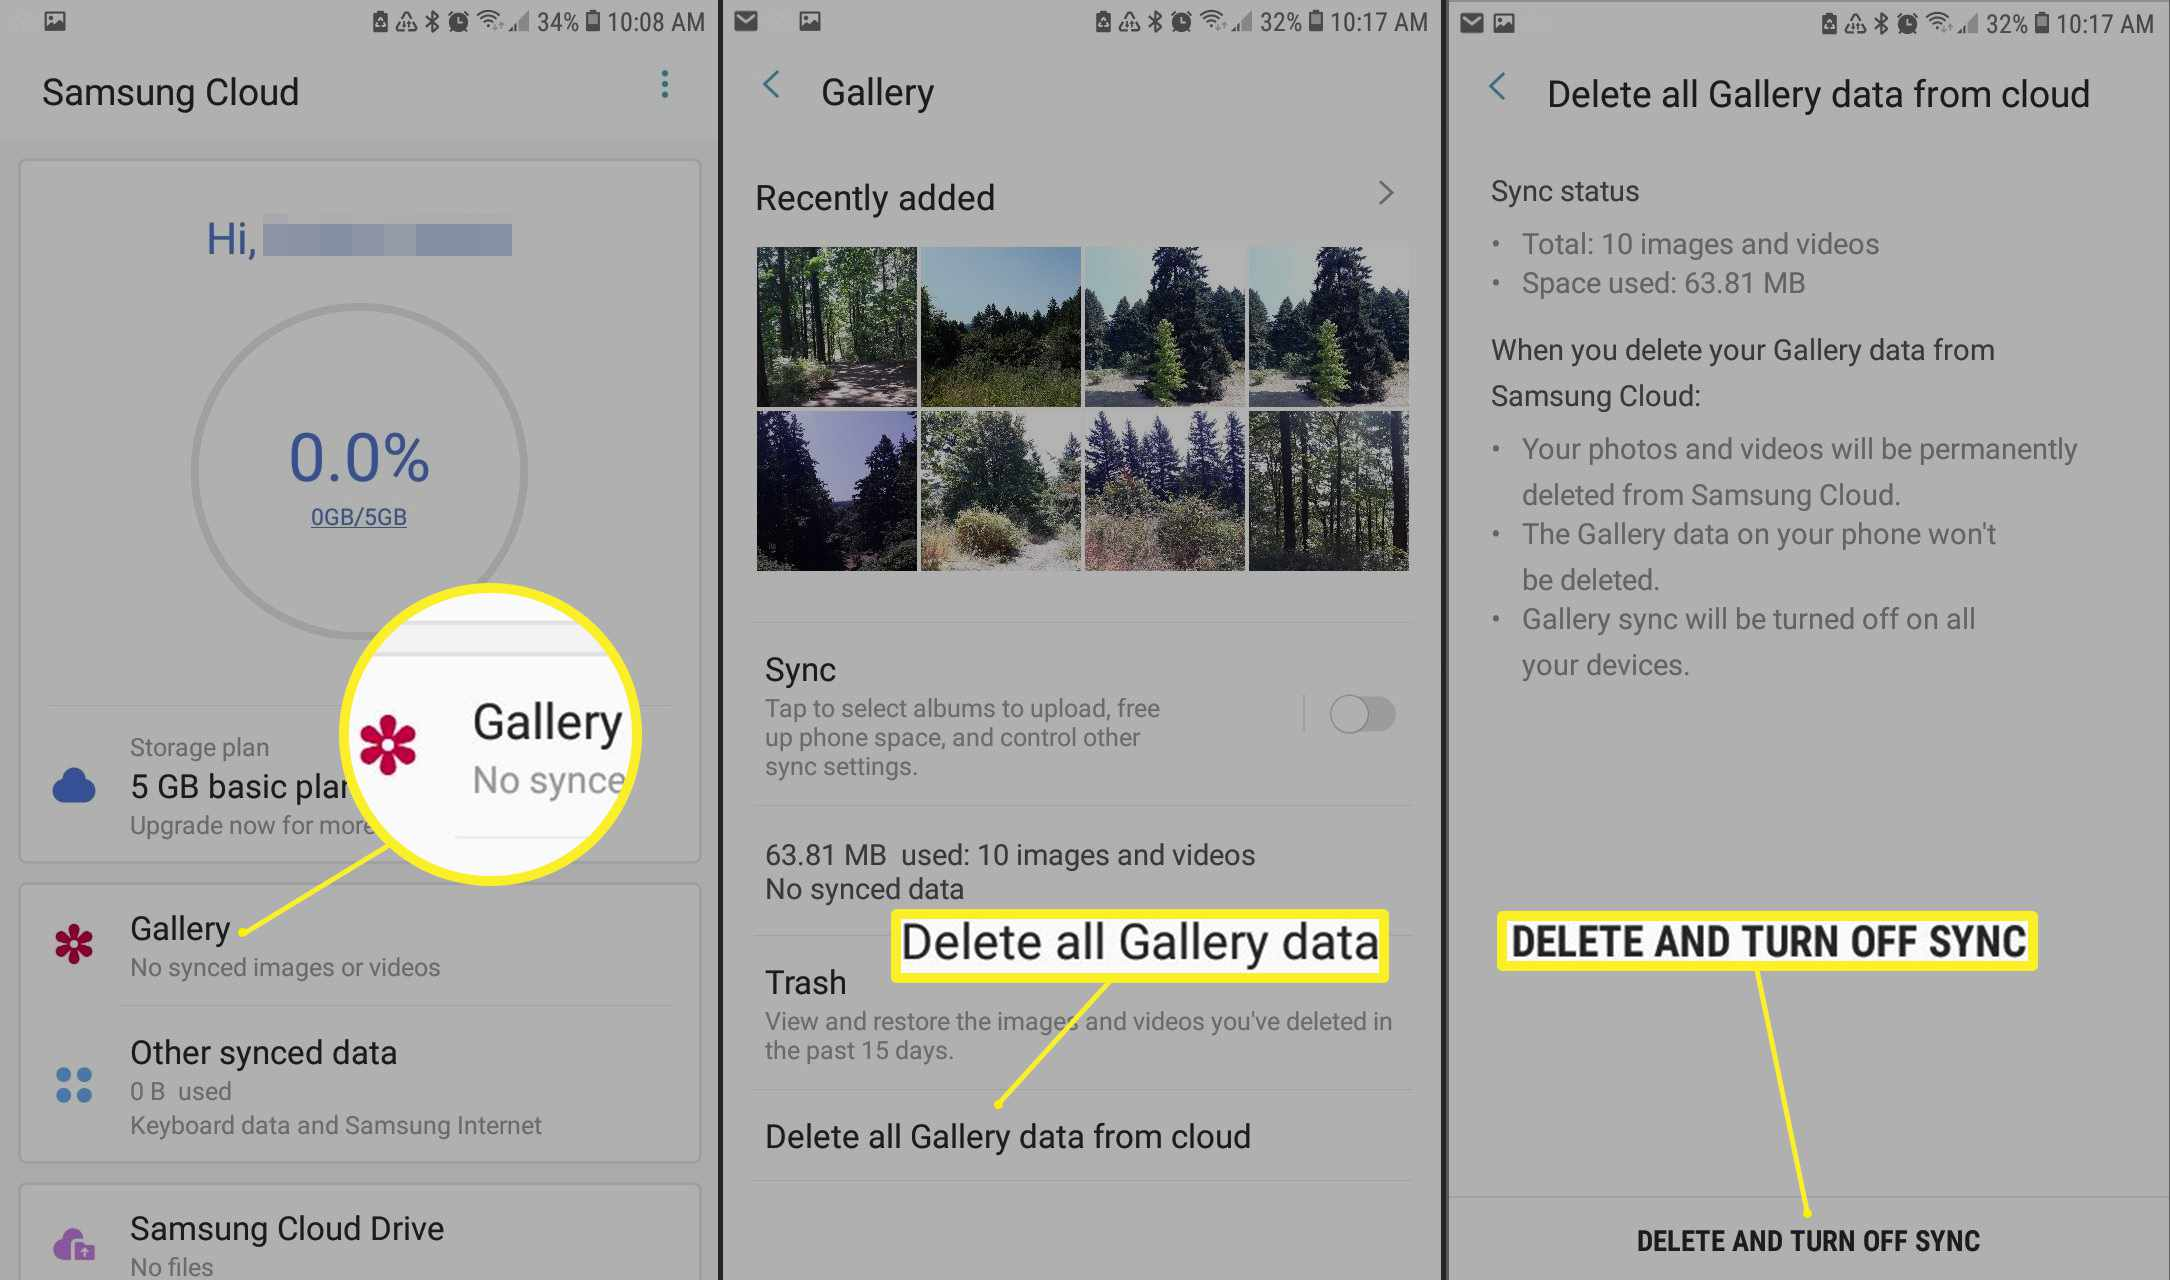 Deleting all Gallery photos from Samsung cloud